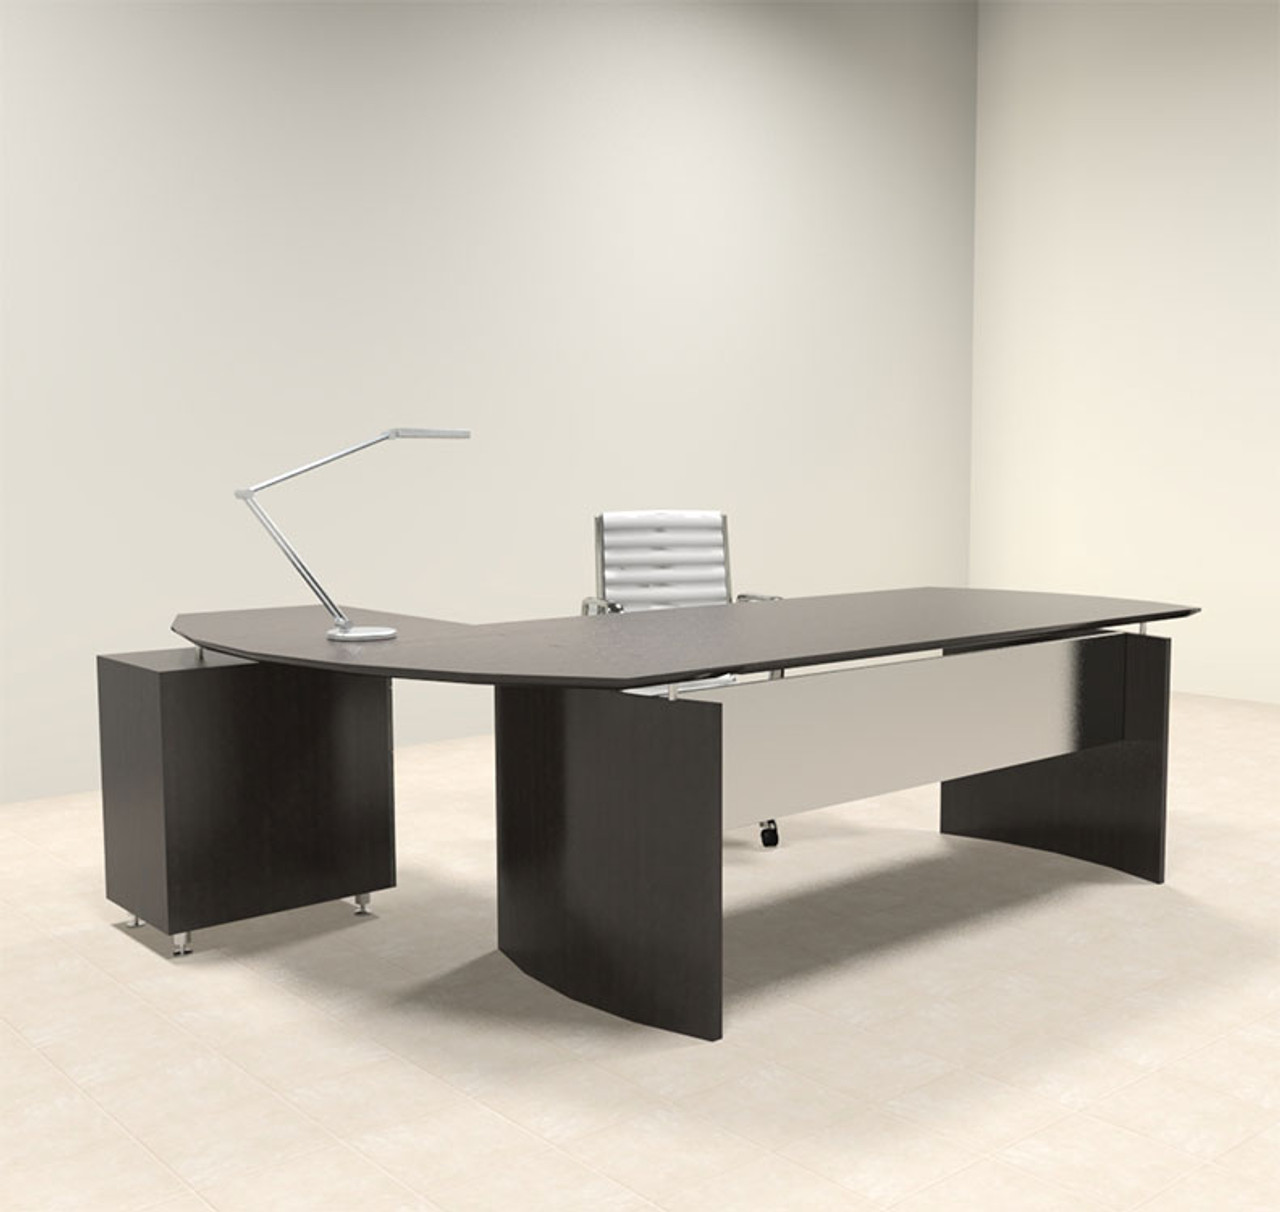 2pc Modern Contemporary L Shaped Executive Office Desk Set, #MT-MED-O6